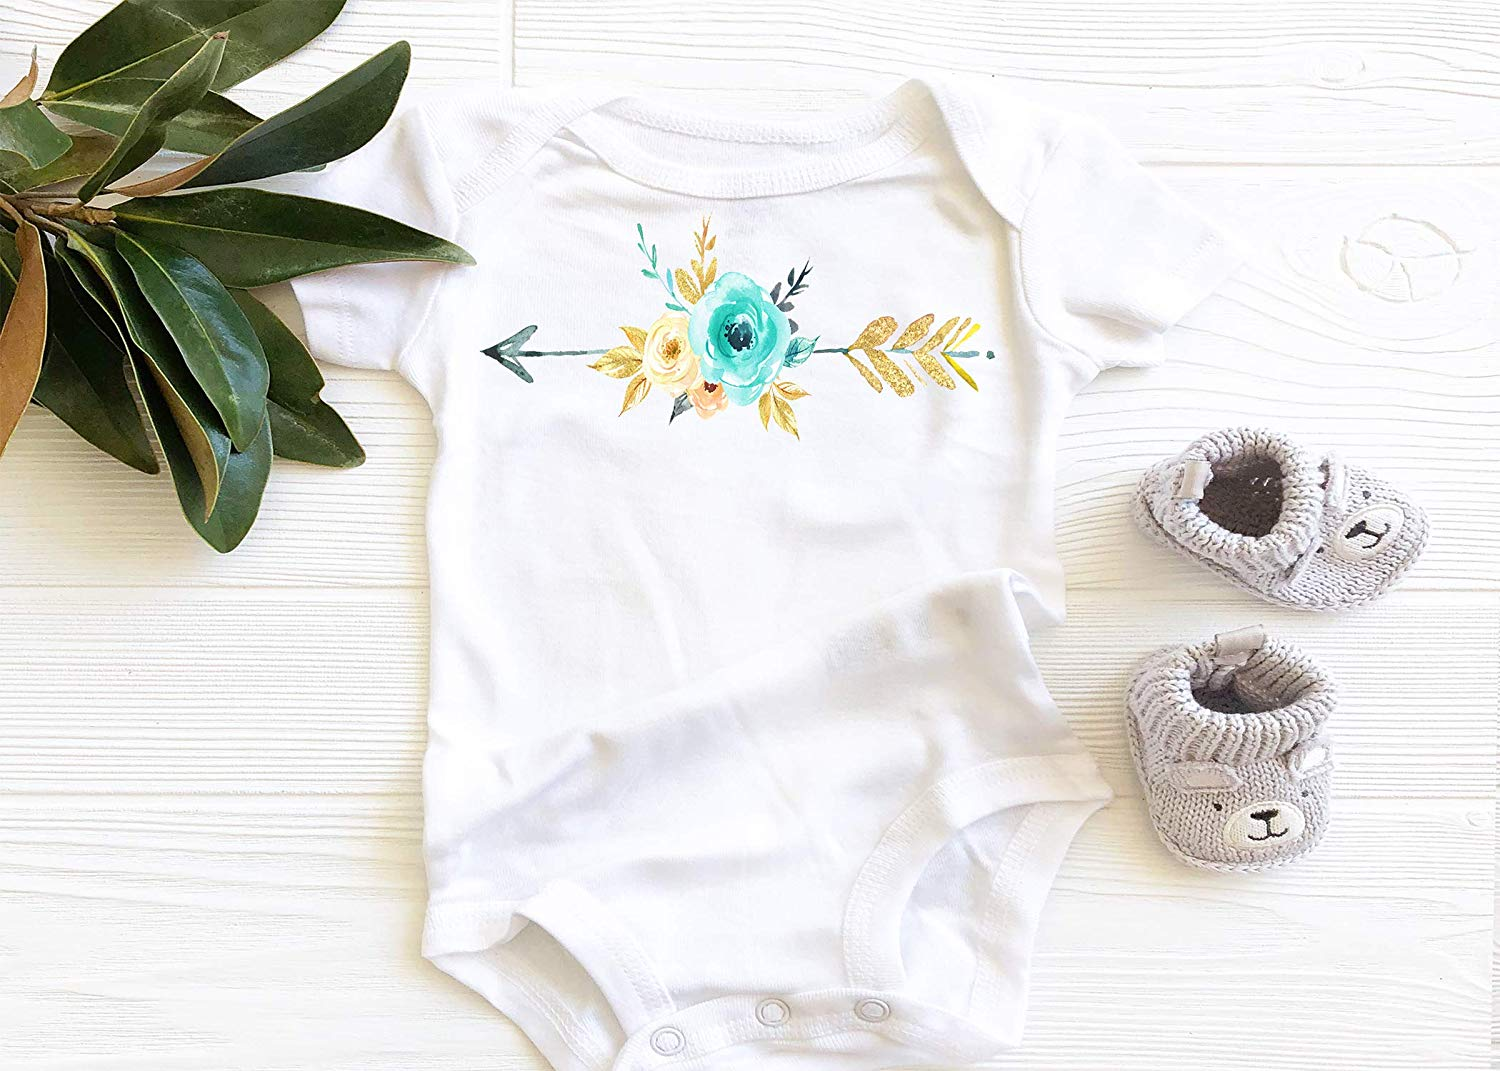 0d7a17095 Get Quotations · Blooming Arrow Onesie, Baby Girl Onesie, Baby Bodysuit,  Onesie, Baby Apparel,